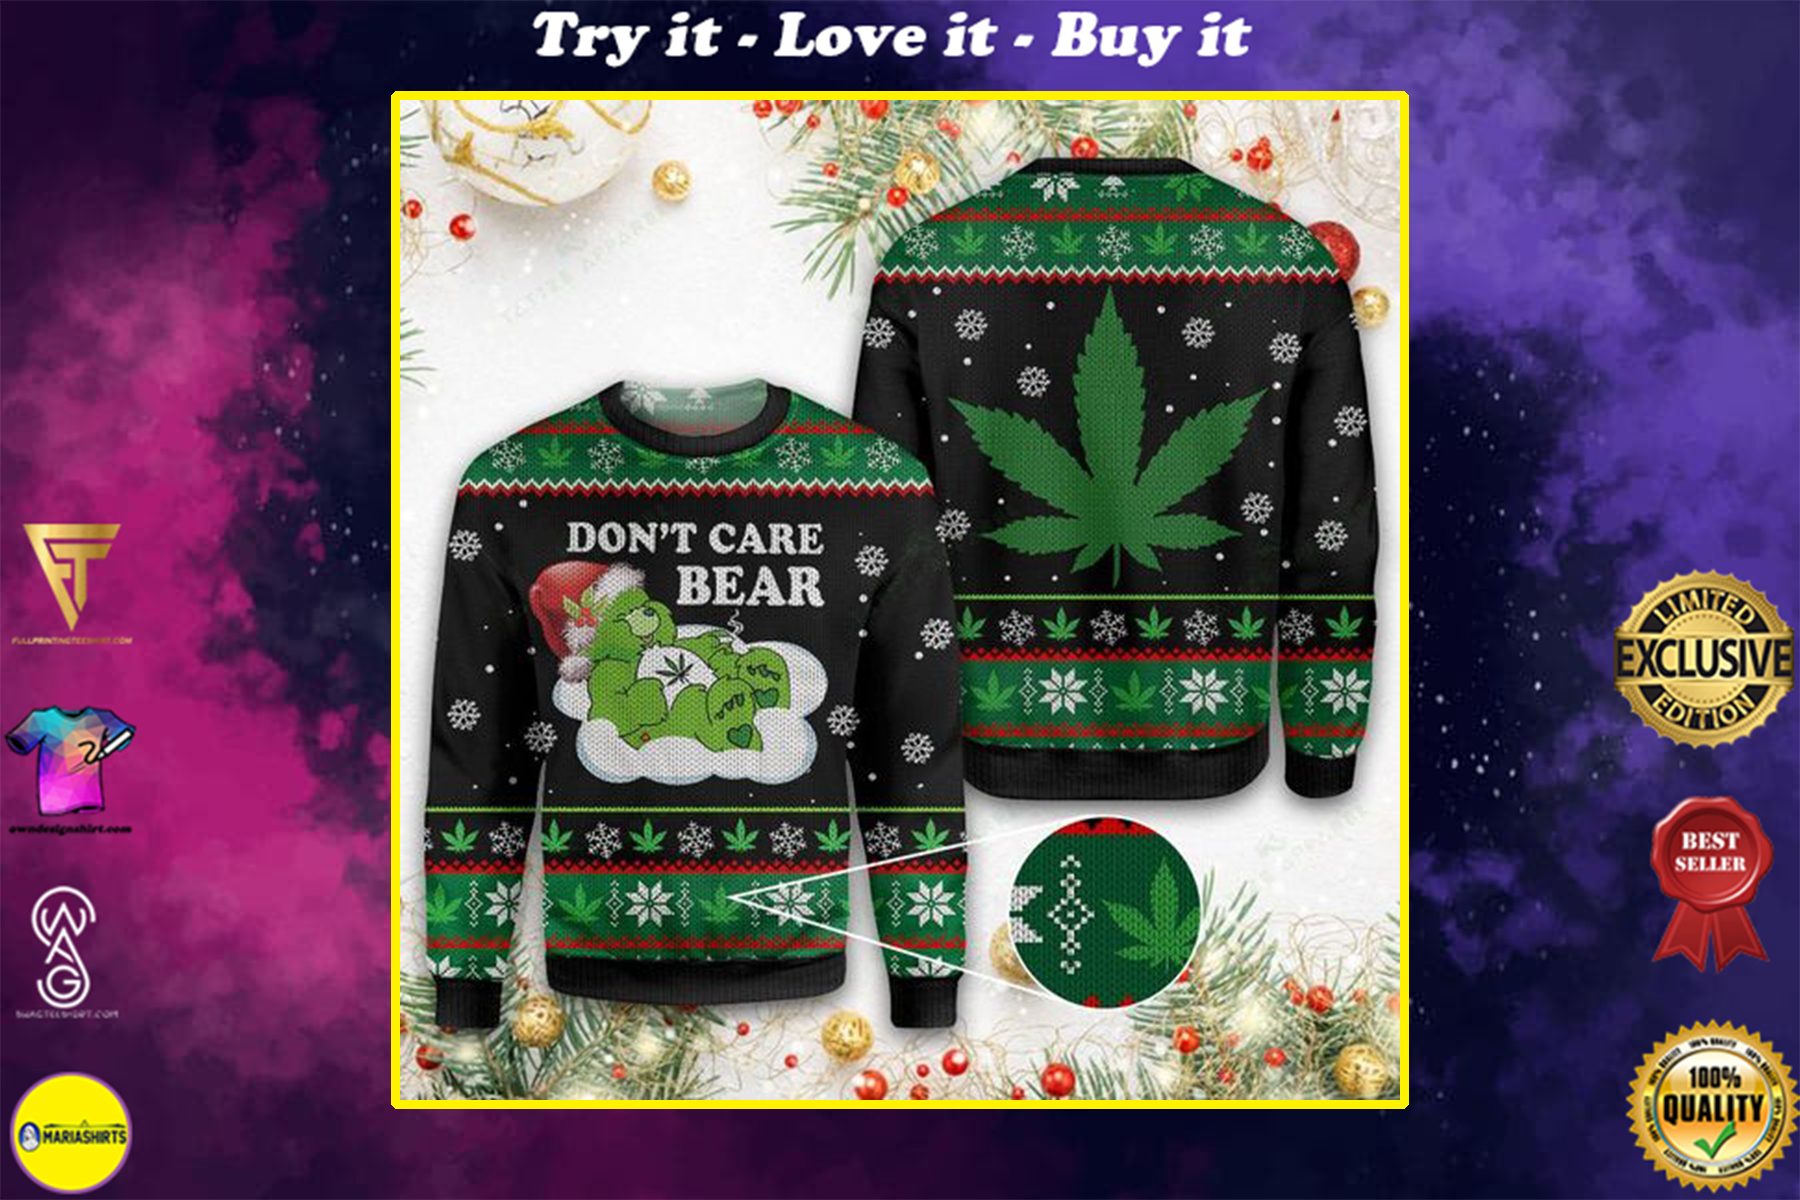 [special edition] christmas weed dont care bear all over printed ugly christmas sweater - maria